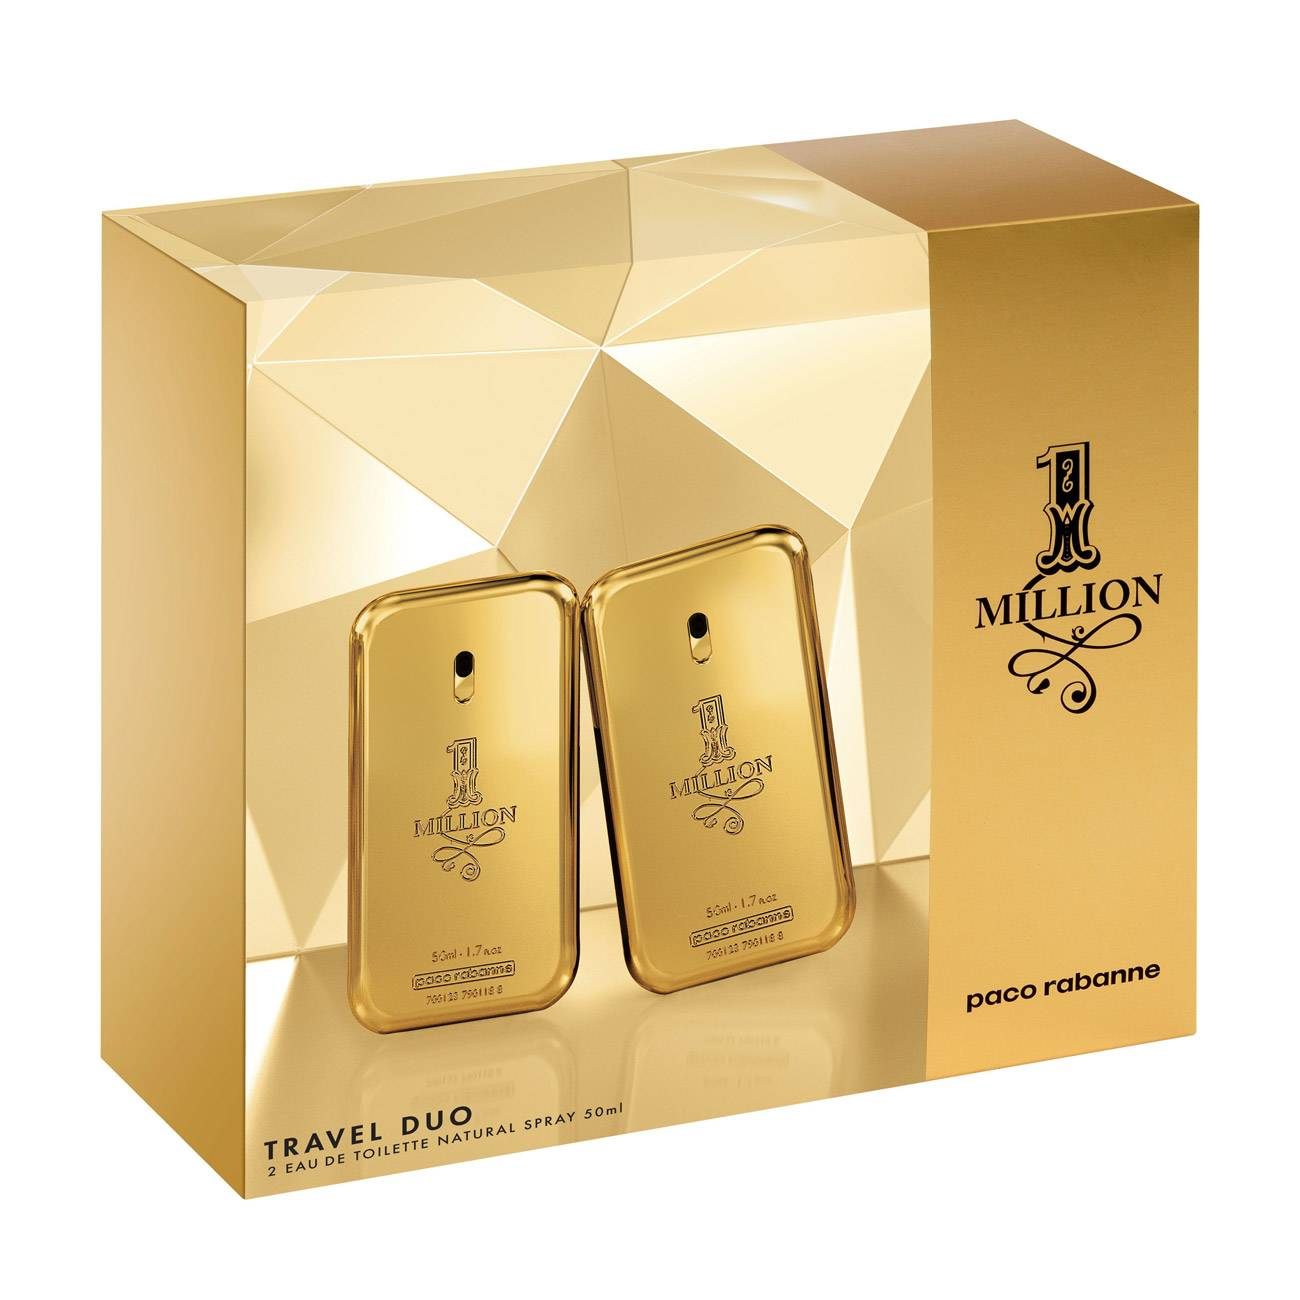 1 MILLION DUO 100ml imagine produs